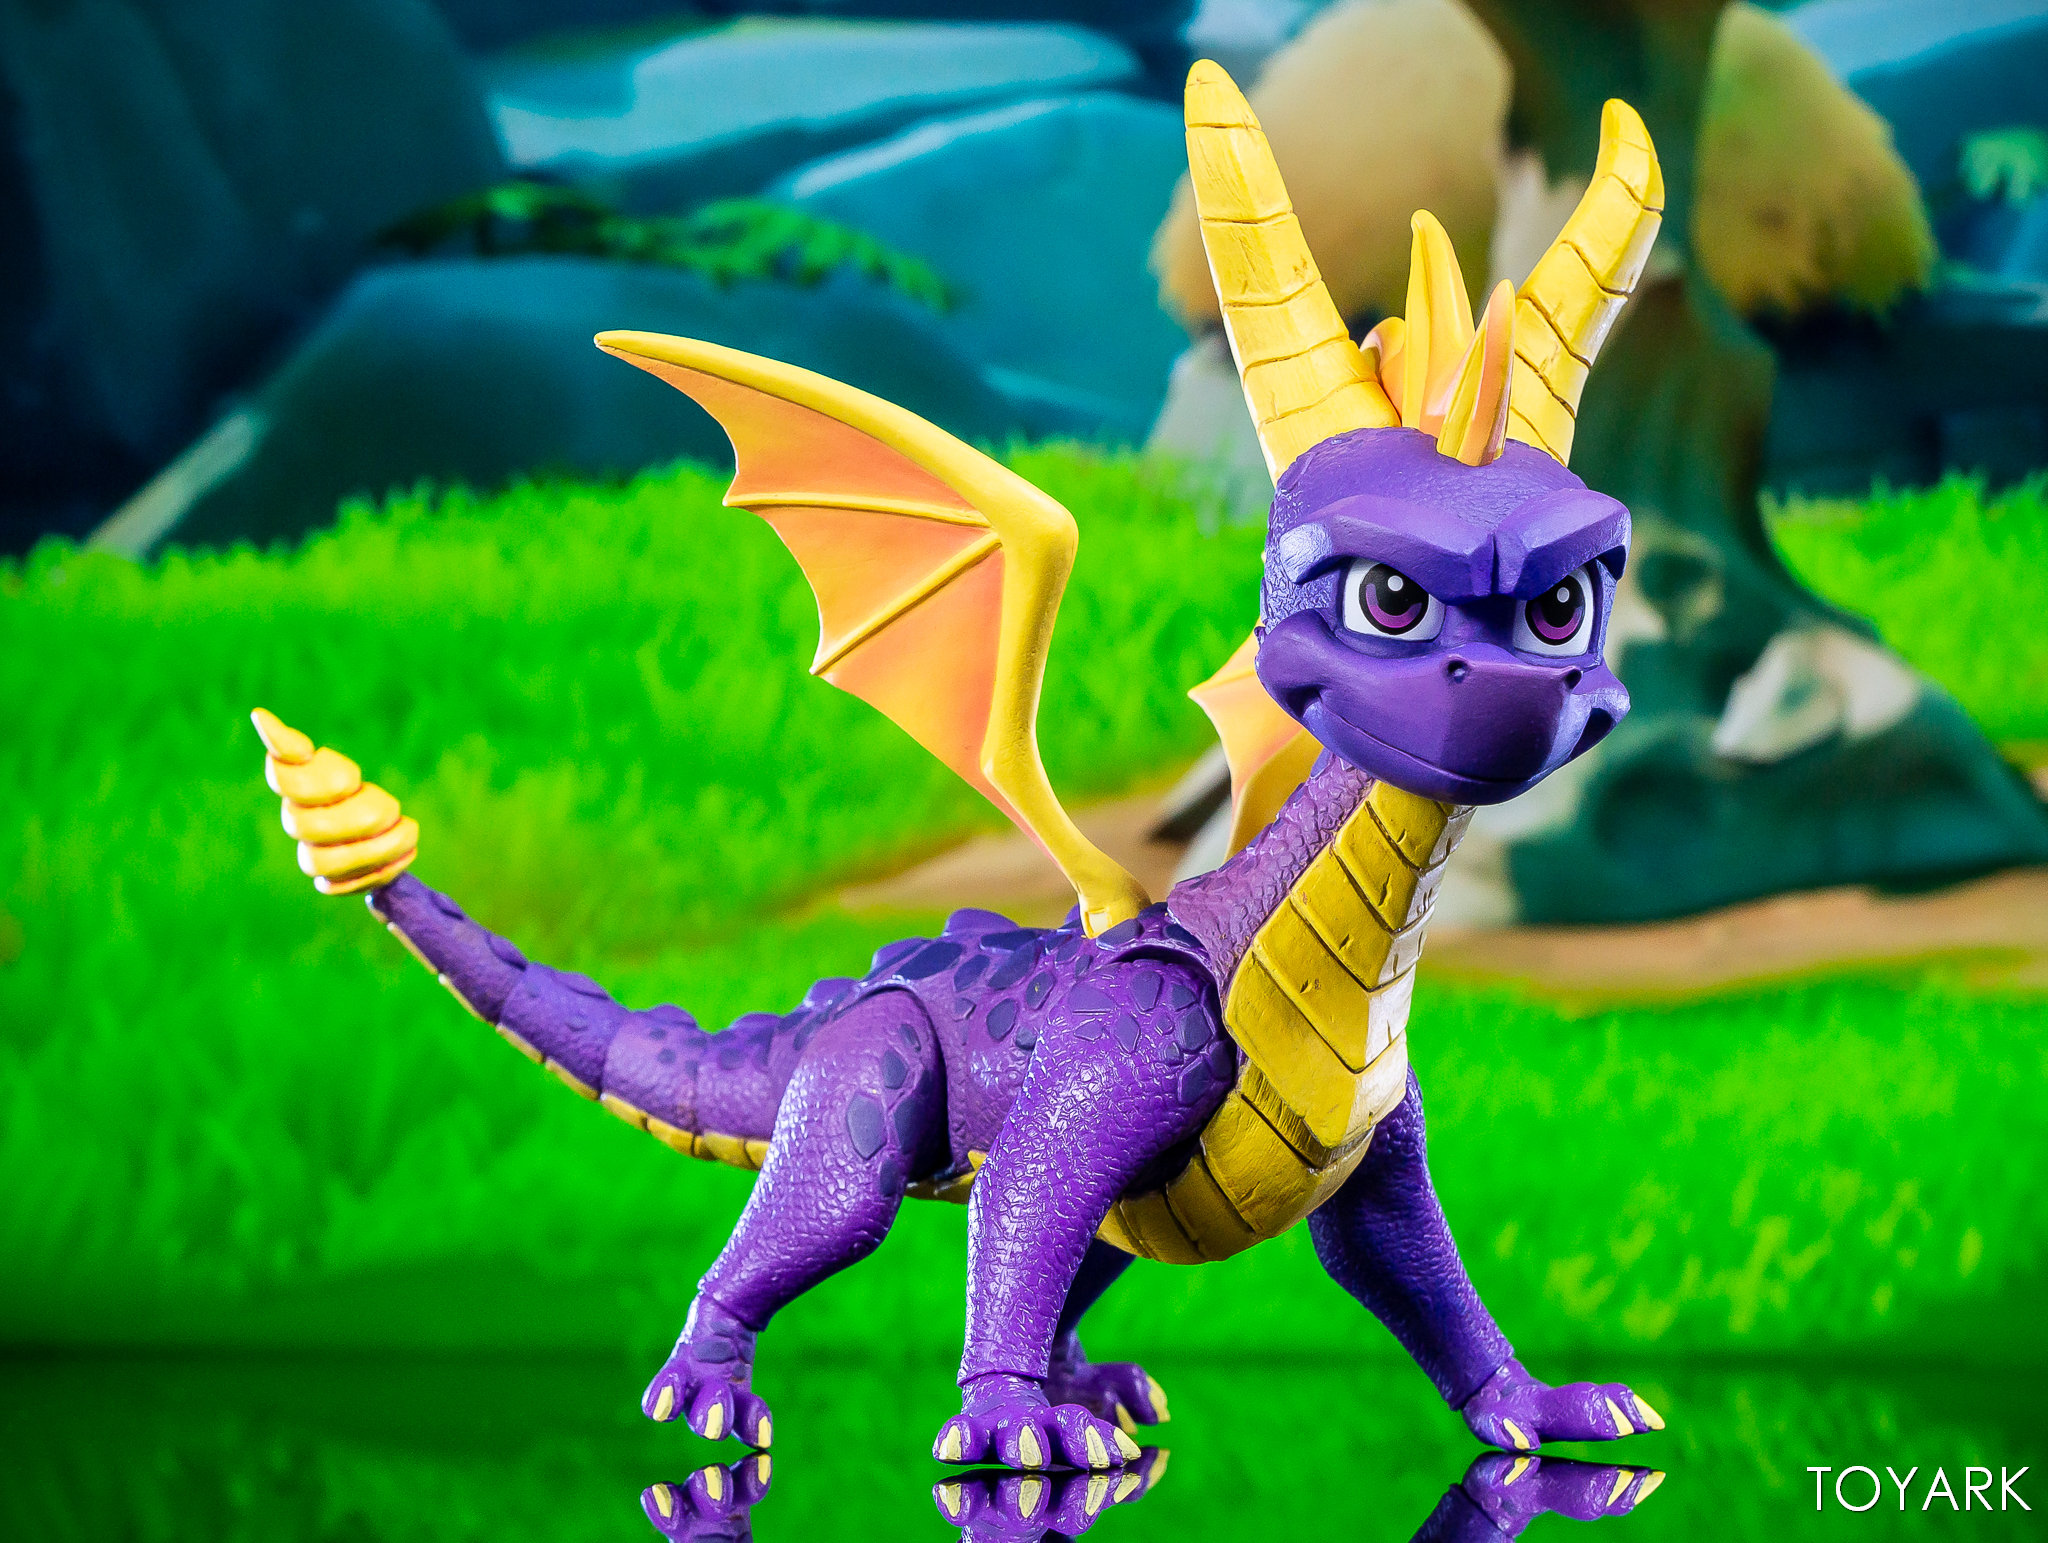 https://news.toyark.com/wp-content/uploads/sites/4/2019/03/NECA-Spyro-The-Dragon-Figure-027.jpg